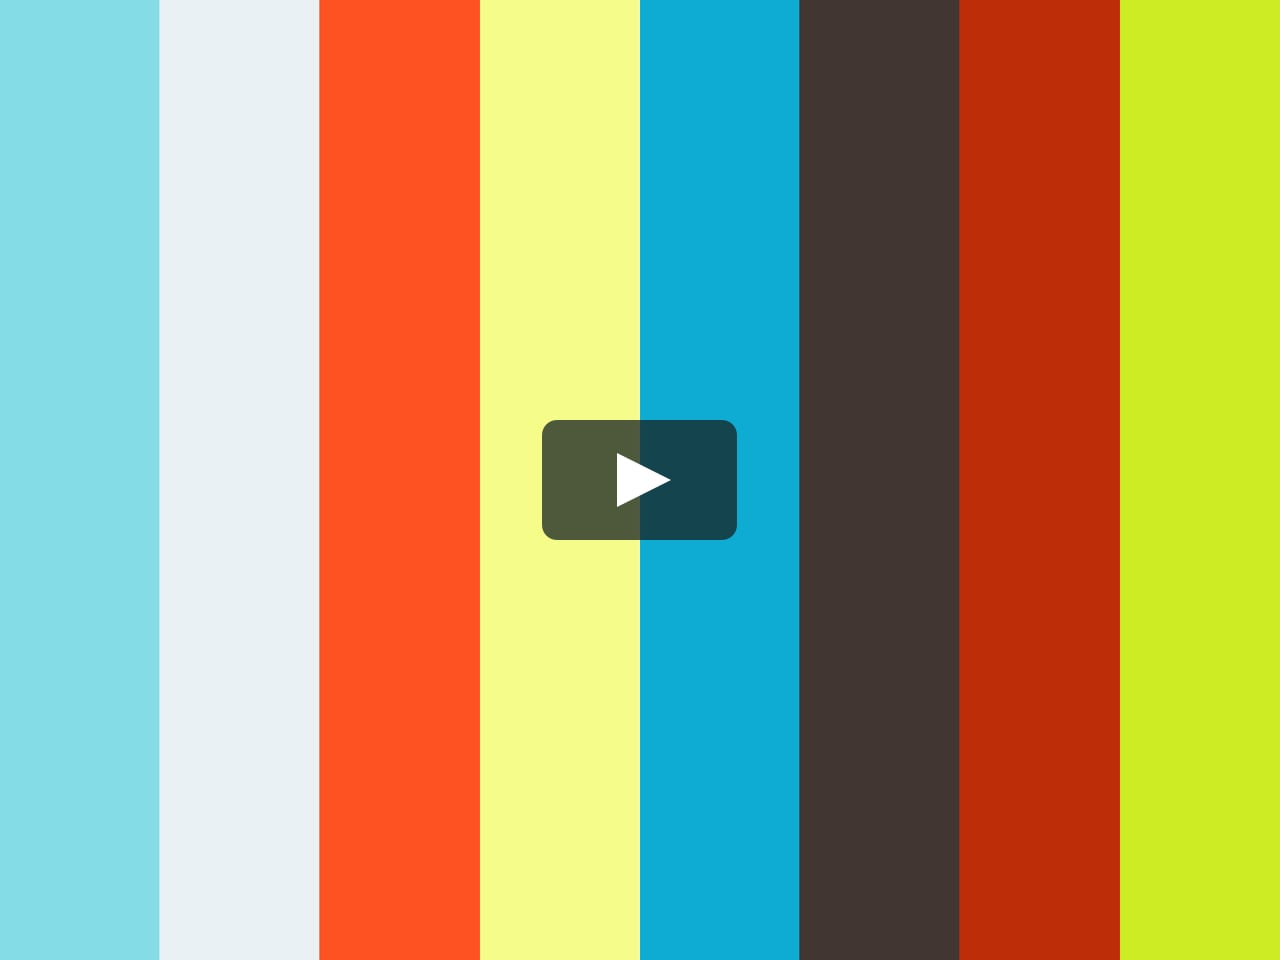 Nbt3a Writing Decimals In Standard Form On Vimeo